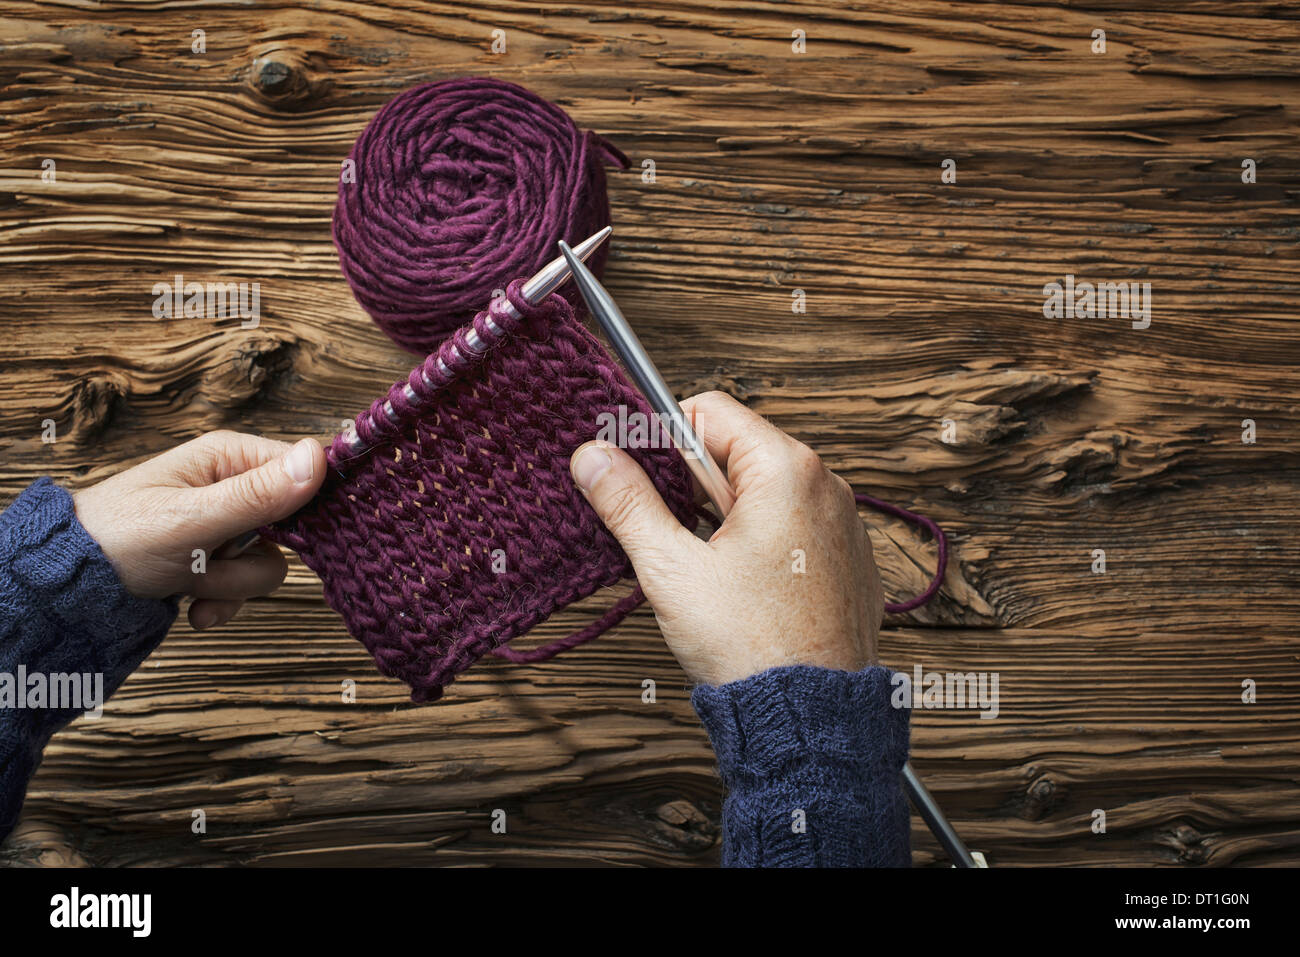 A woman holding two knitting needles and a piece of knitting in purple wool - Stock Image